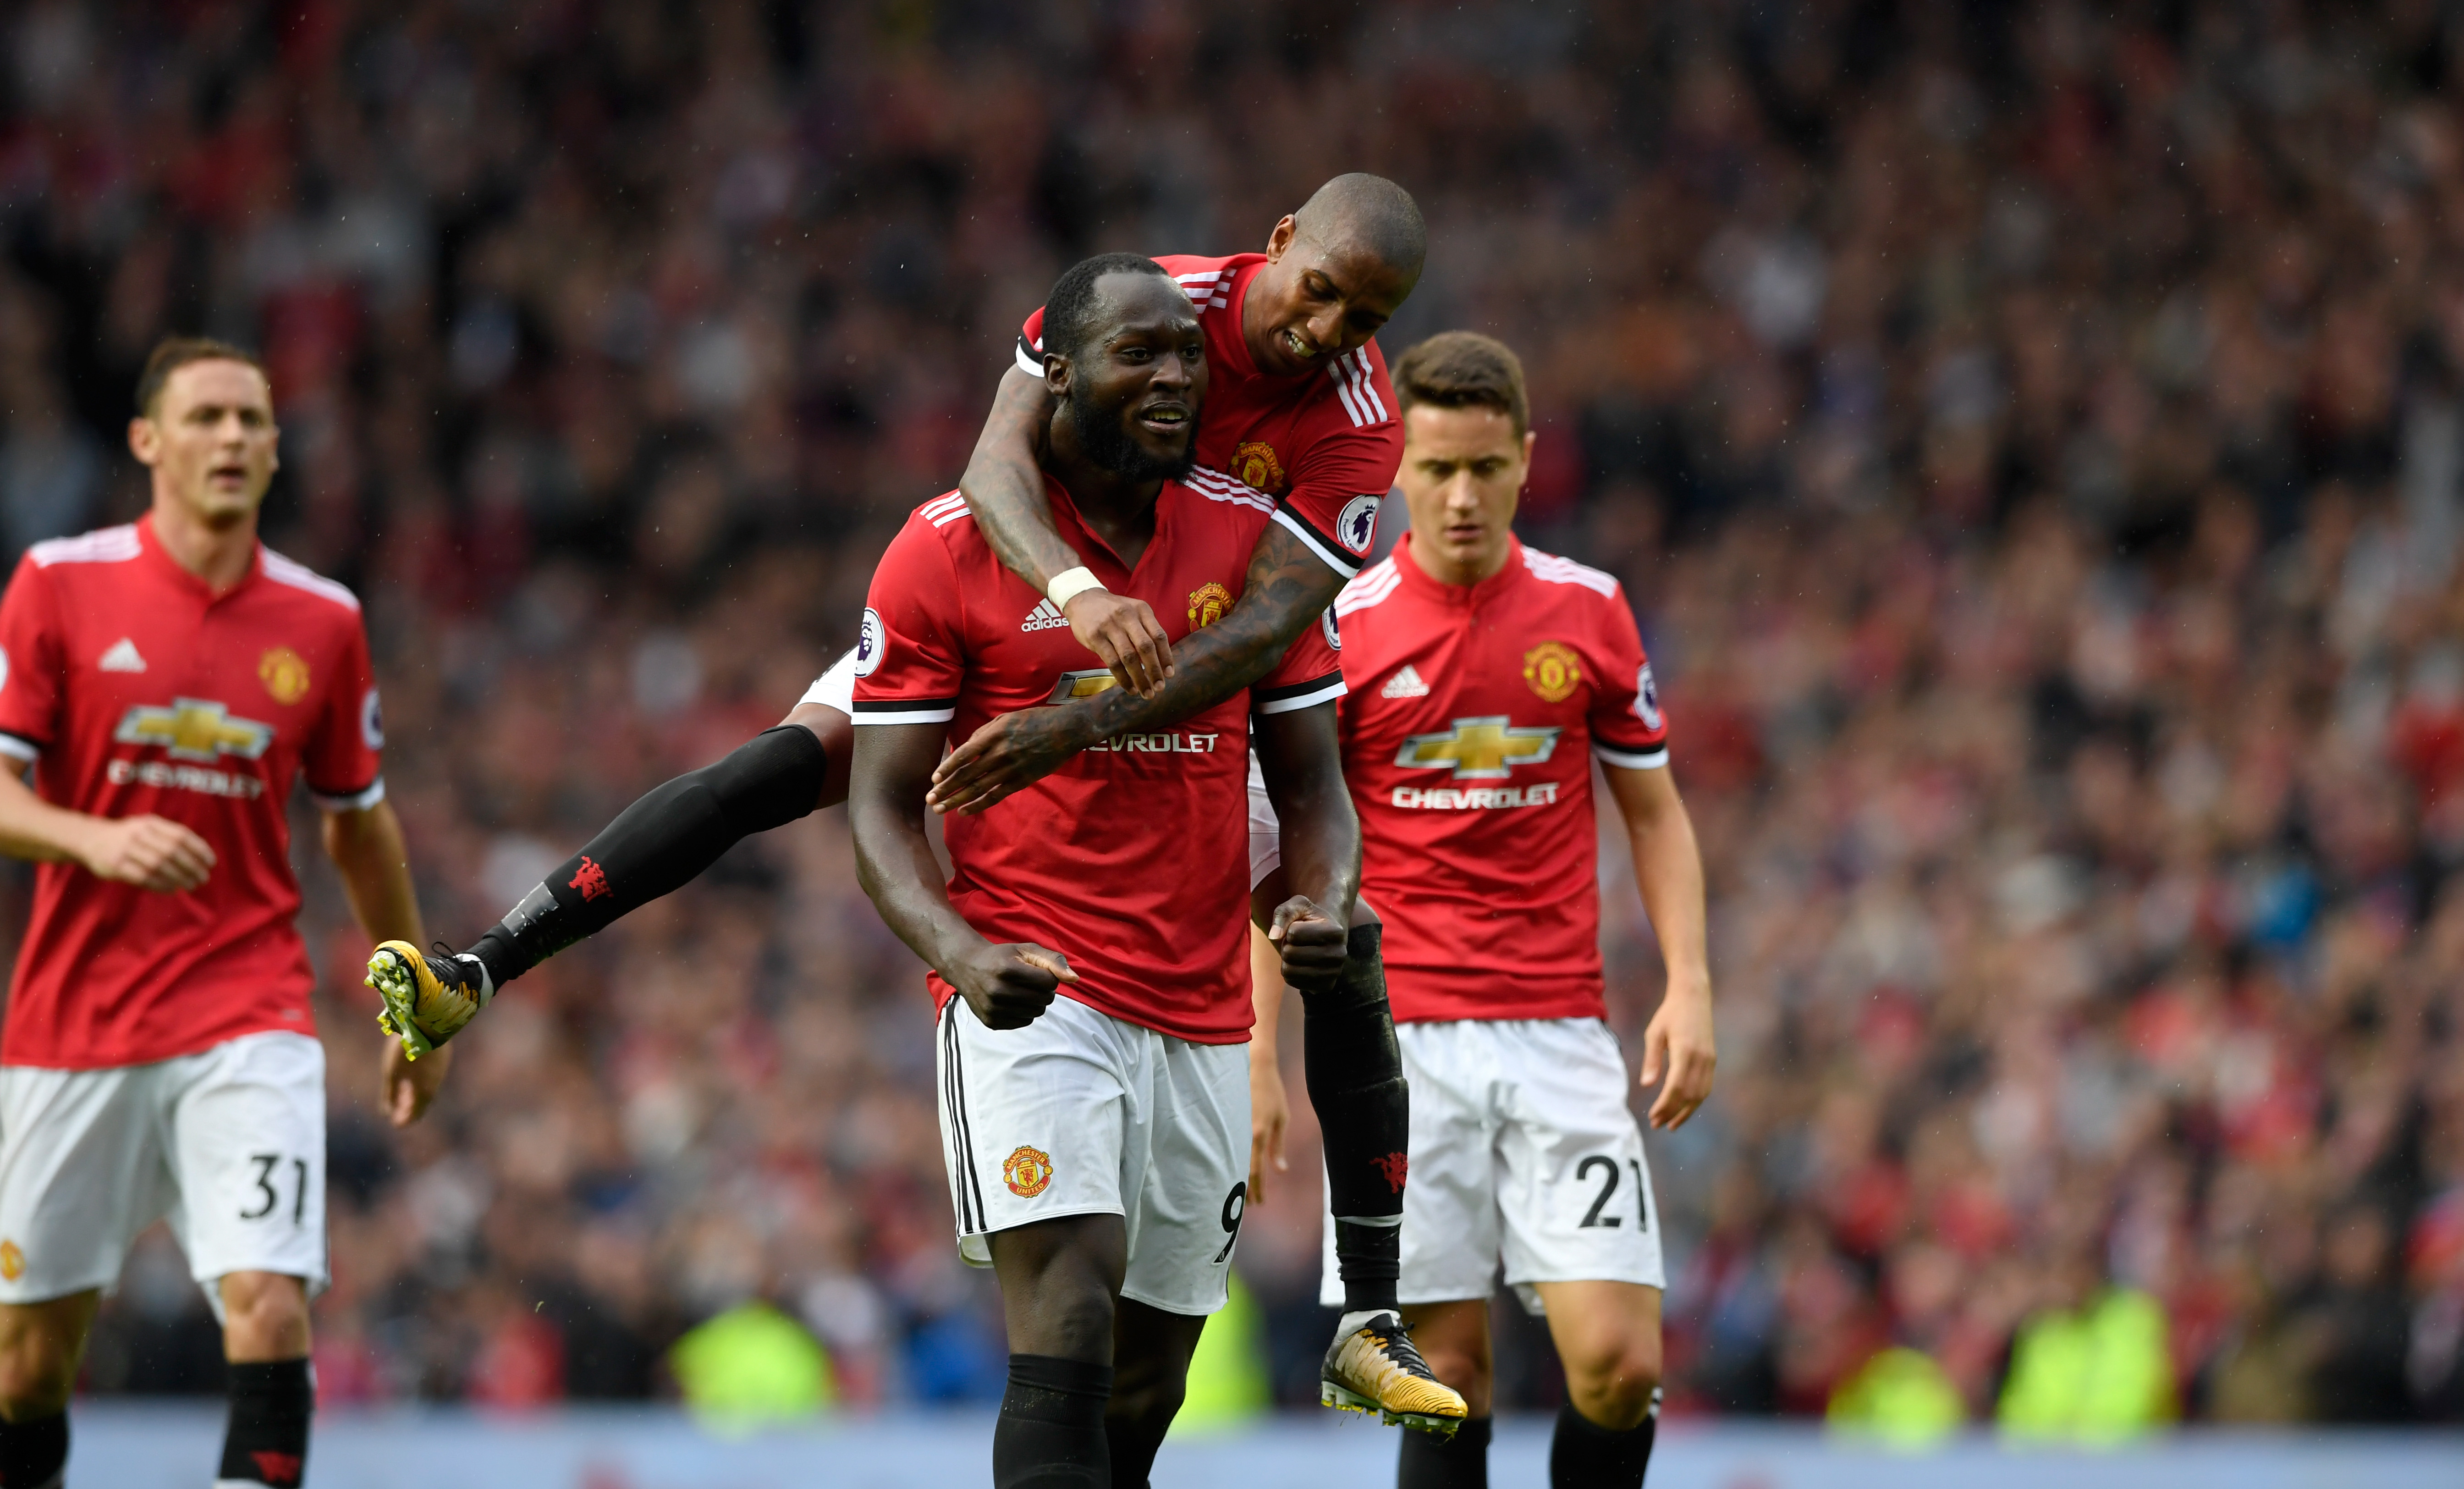 Thierry Henry Lukaku more unselfish since Manchester United move